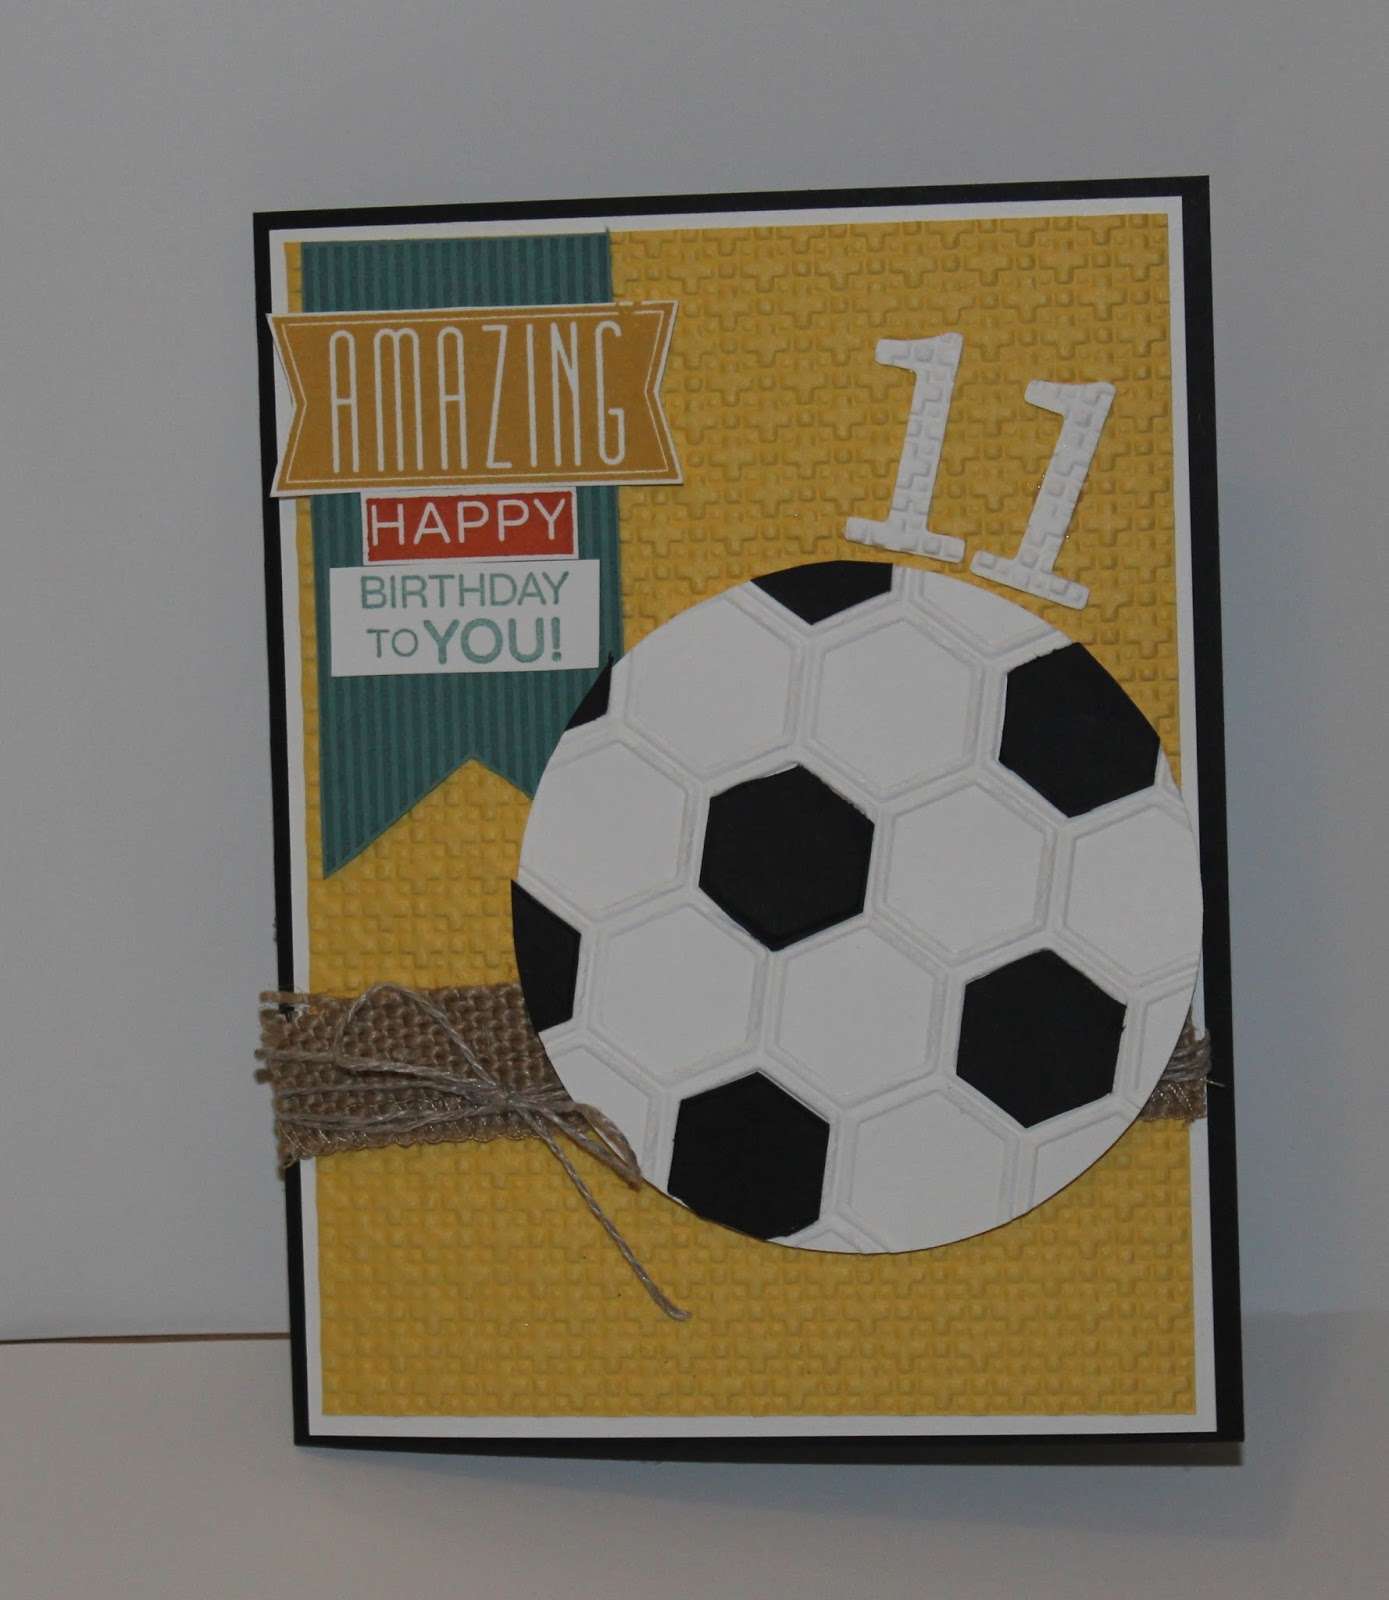 Share Yet Another Birthday Card Today This One Could Be For A Boy Or Anyone Who Loves And Plays Soccer Actually Describes My 11 Year Old Son